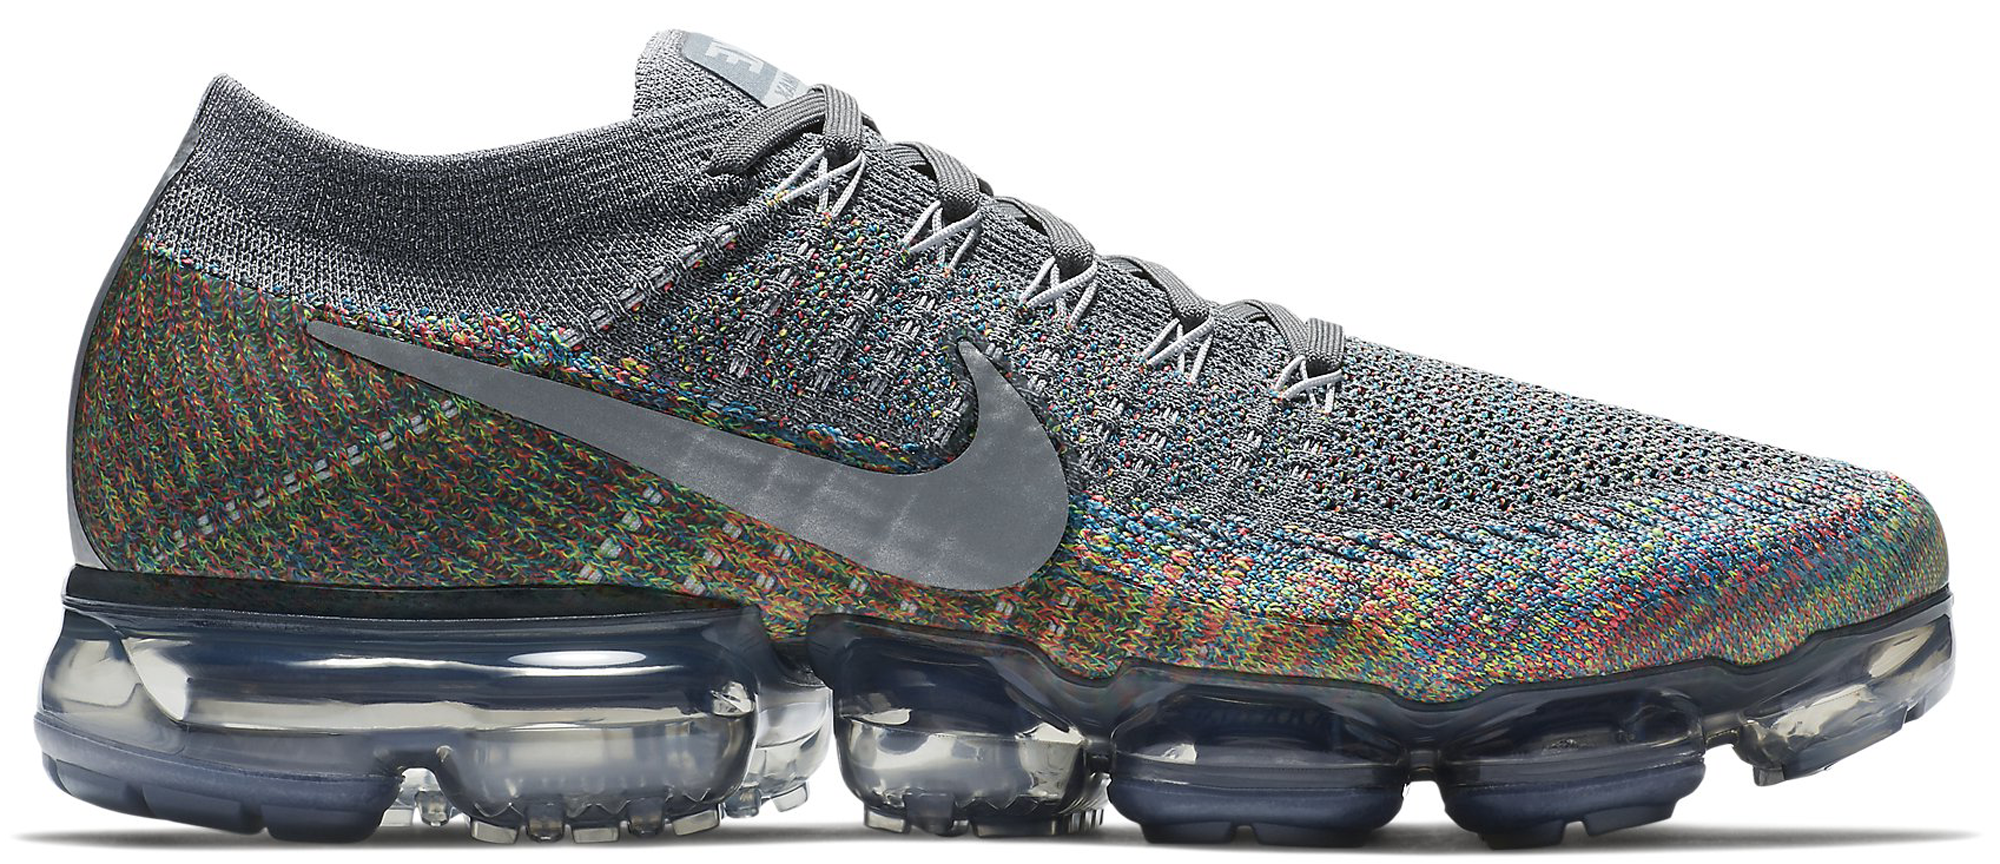 2018 Nike Air VaporMax Flyknit Color Gray